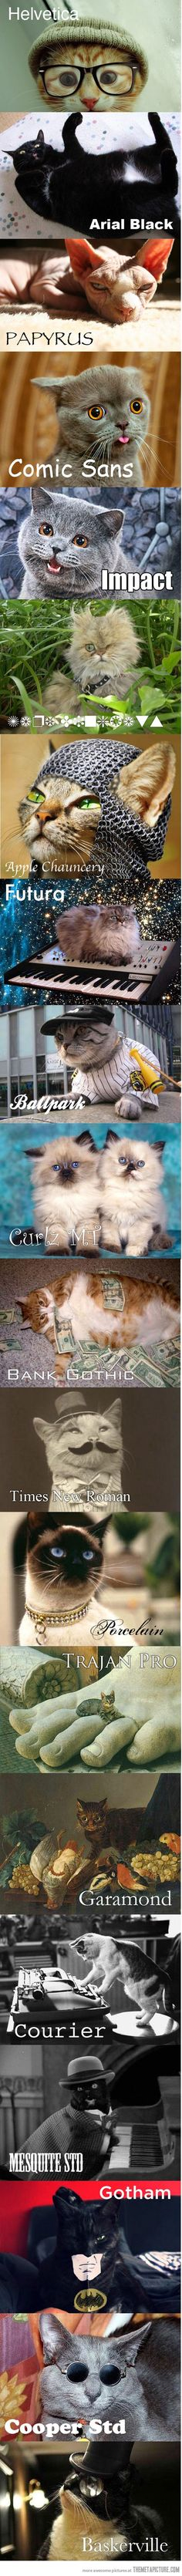 Fonts as cats.